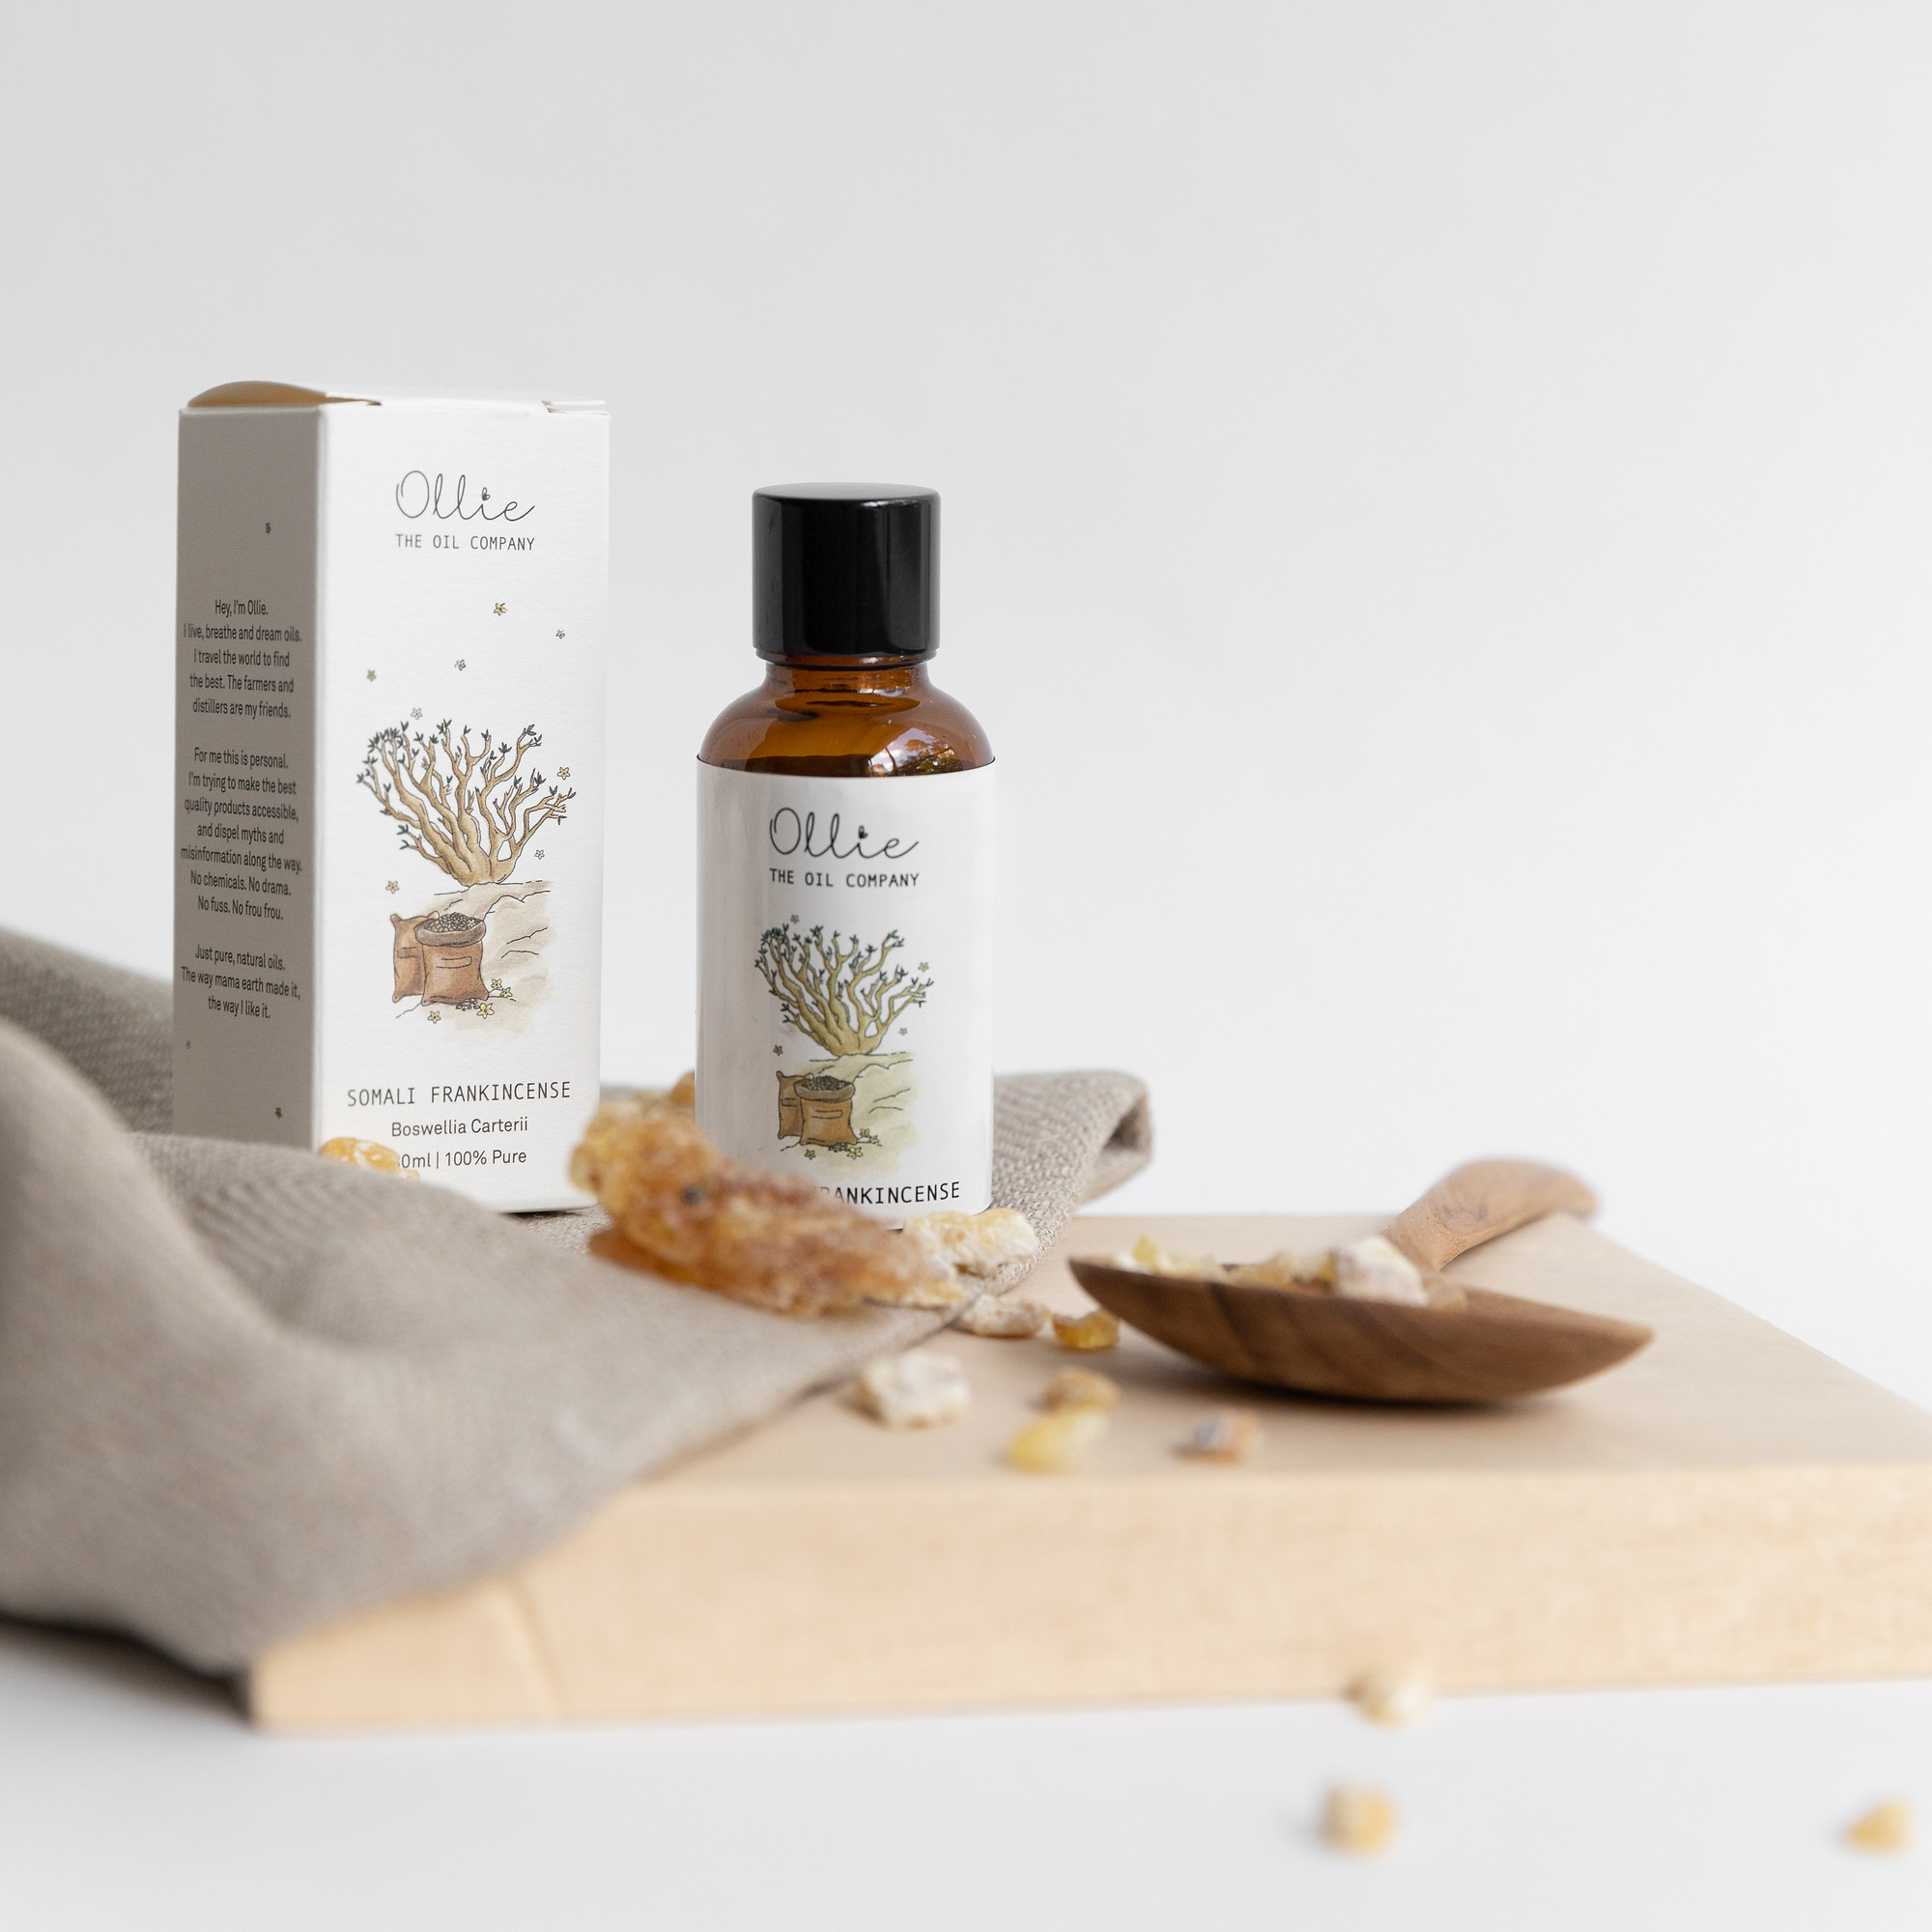 How To Use Frankincense Essential Oil Soothe Skin Improve Sleep And More